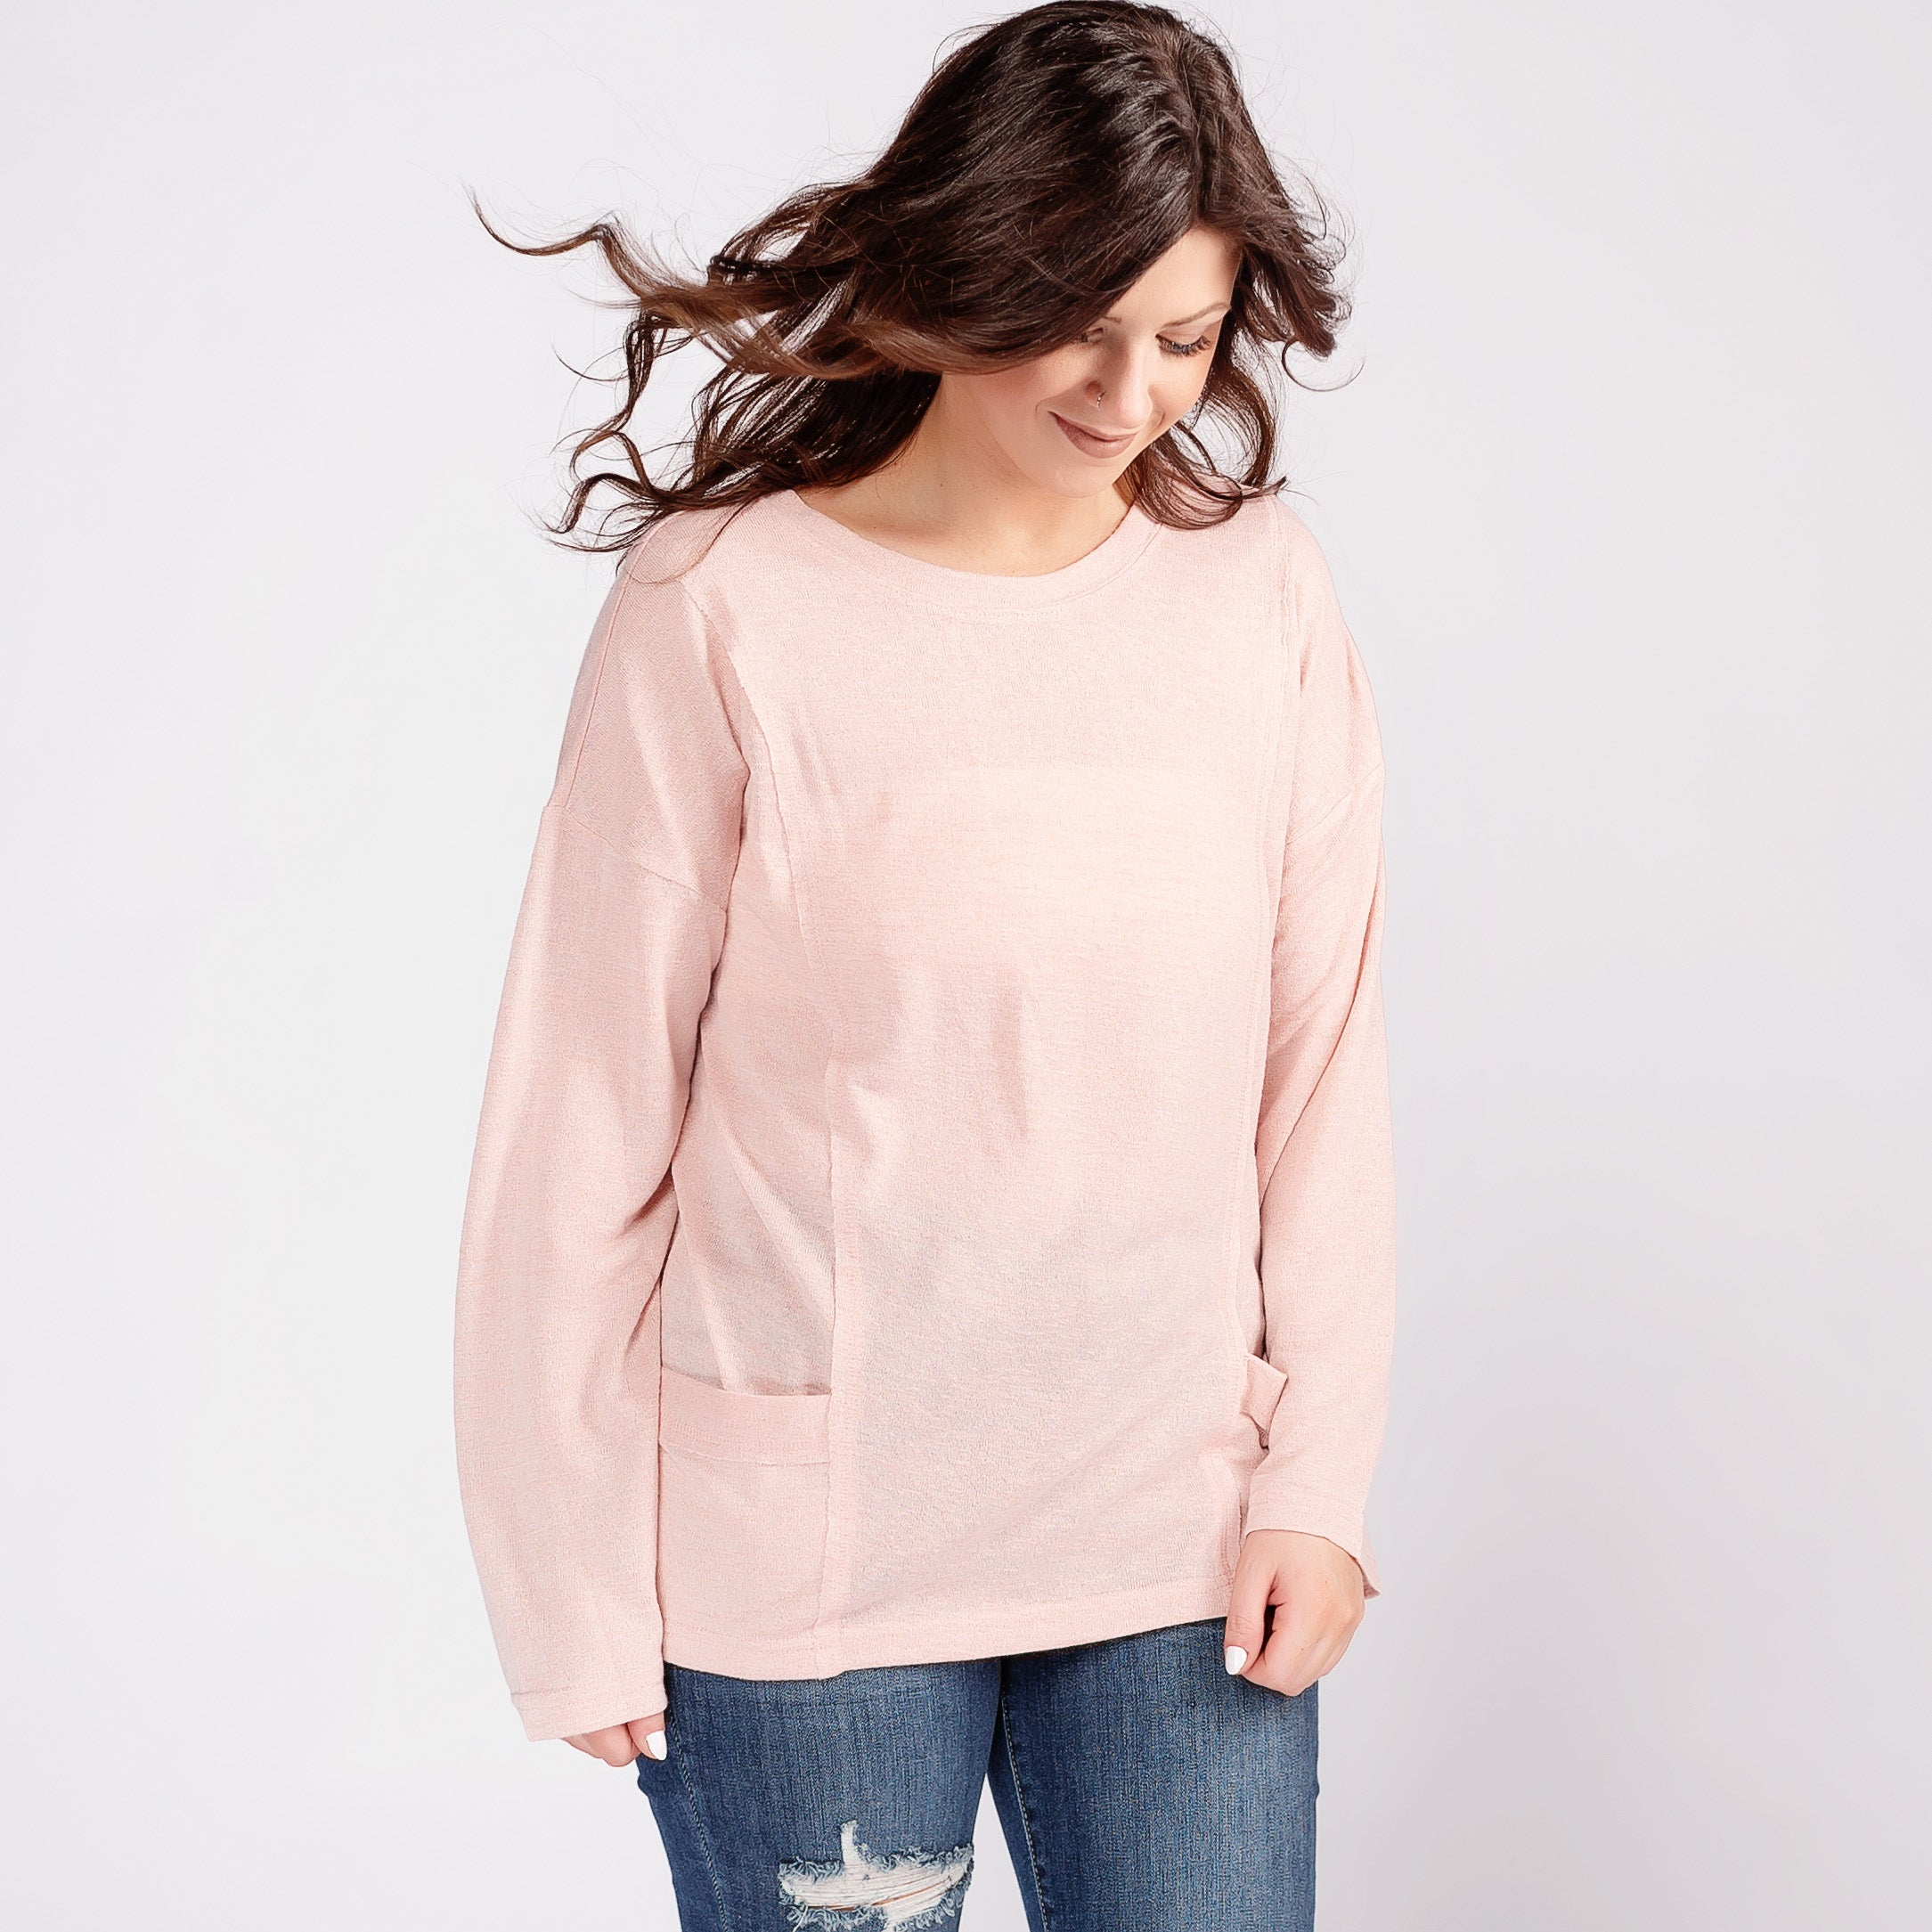 Long Sleeve Top with Side Pockets *Final Sale*